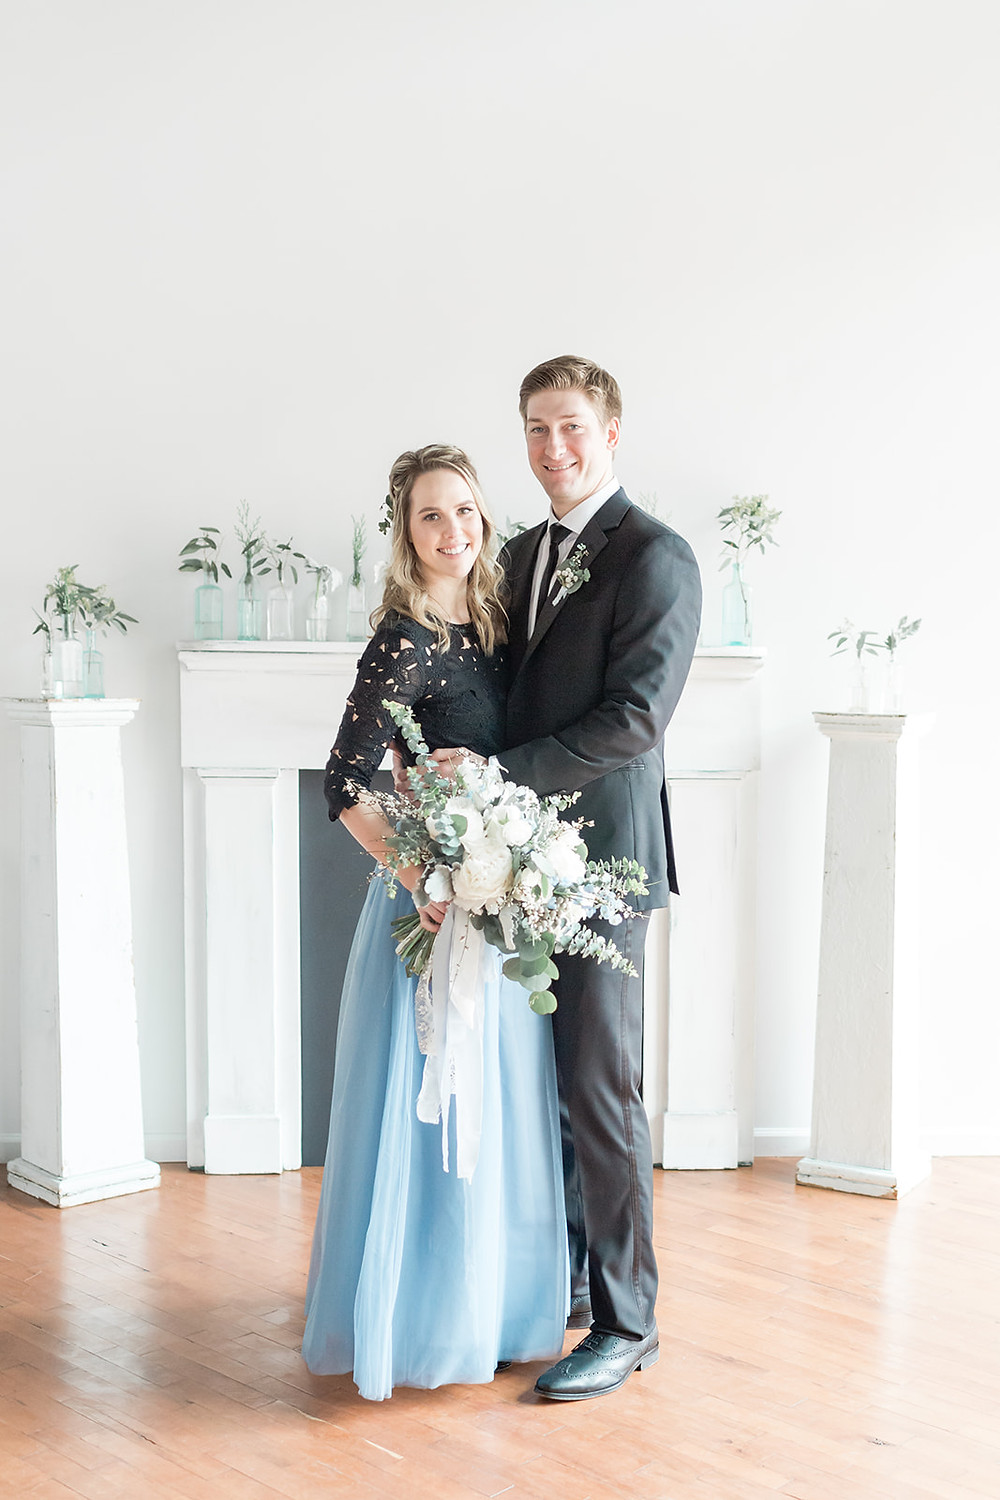 Bride and groom pose in front of vintage mantel accented with blues and greens.  Photo credit: Valerie Michele Photography